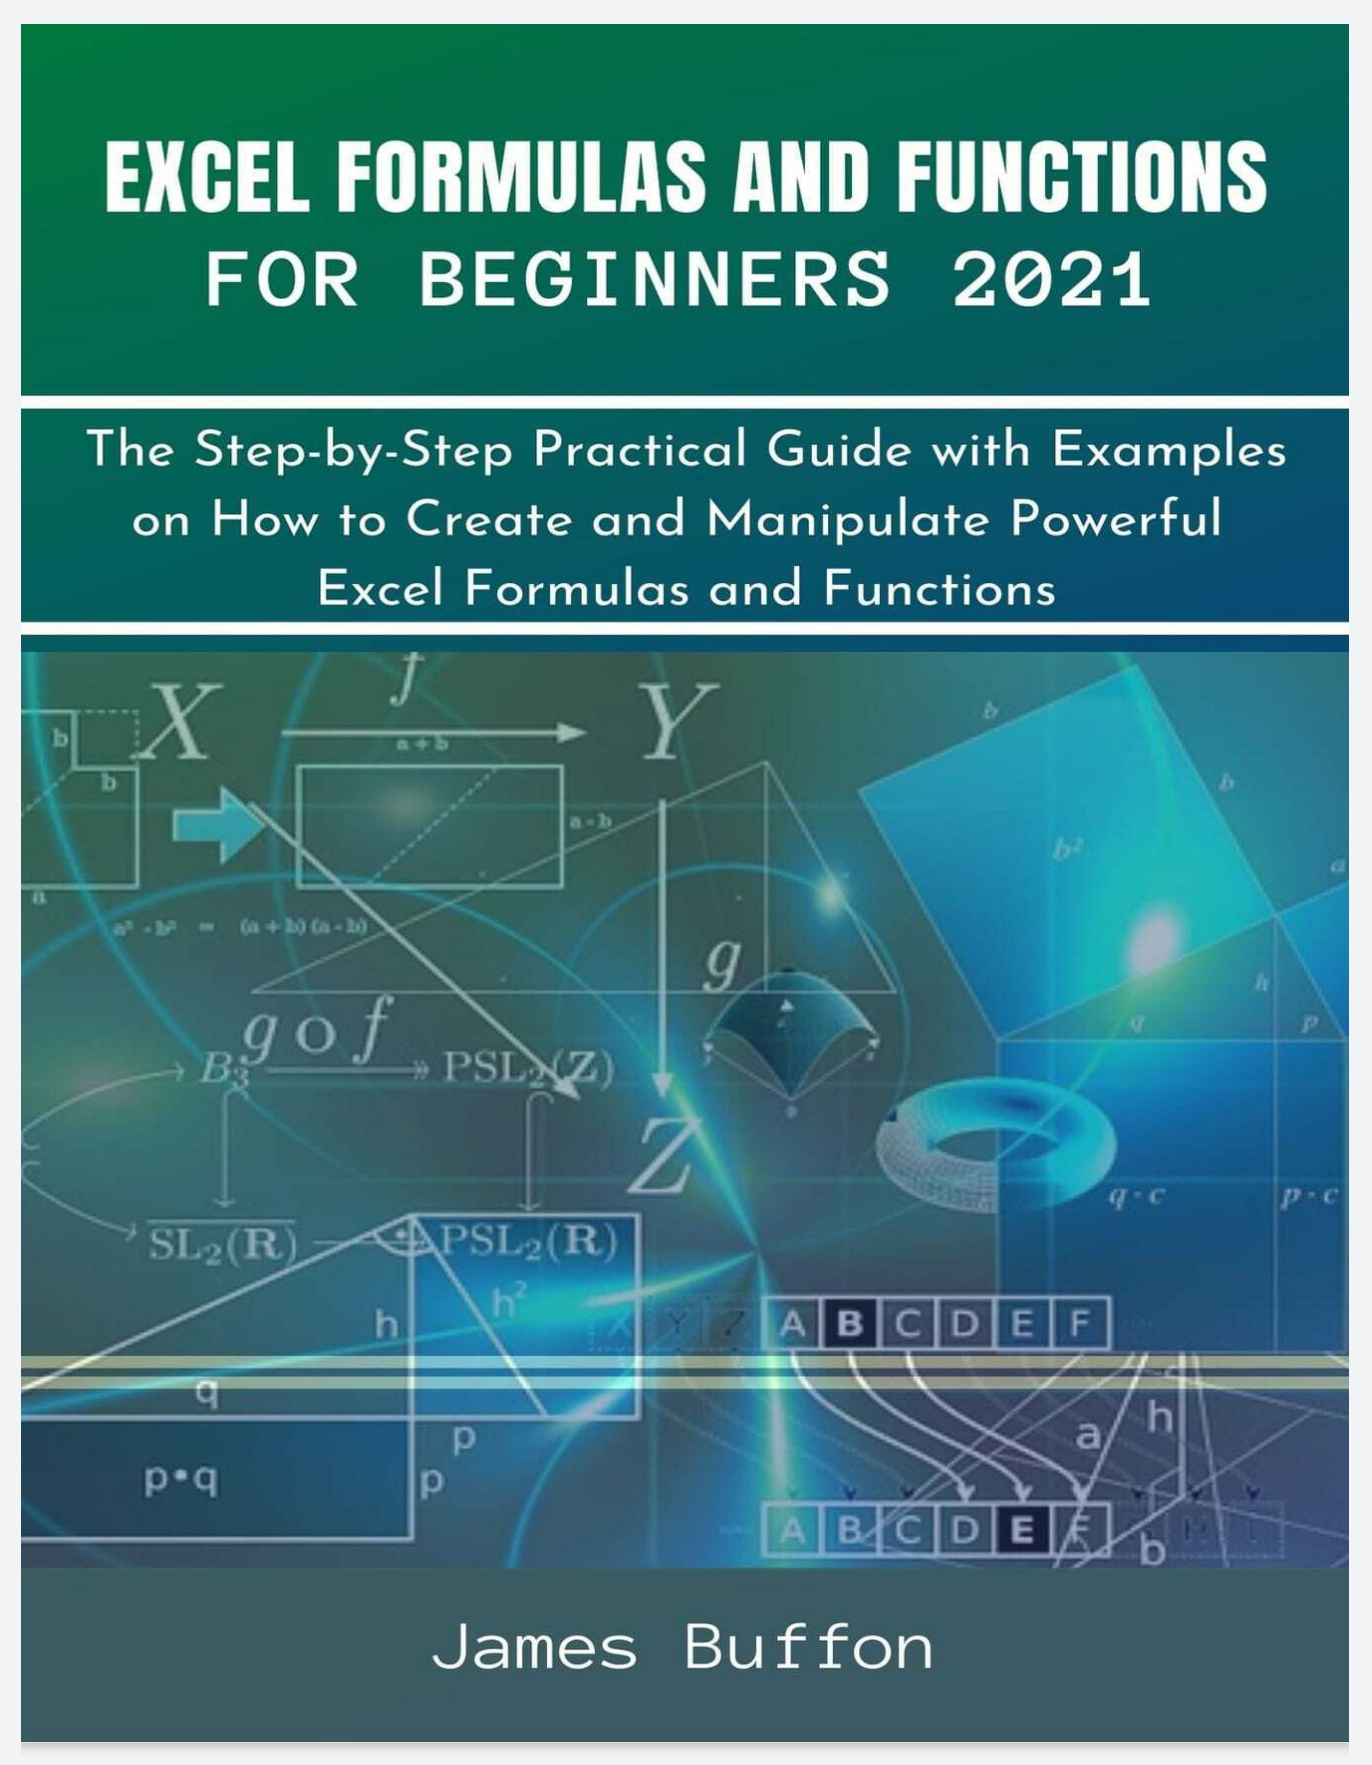 Excel Formulas and Functions for Beginners 2021: The Step-by-Step Practical Guide with Examples